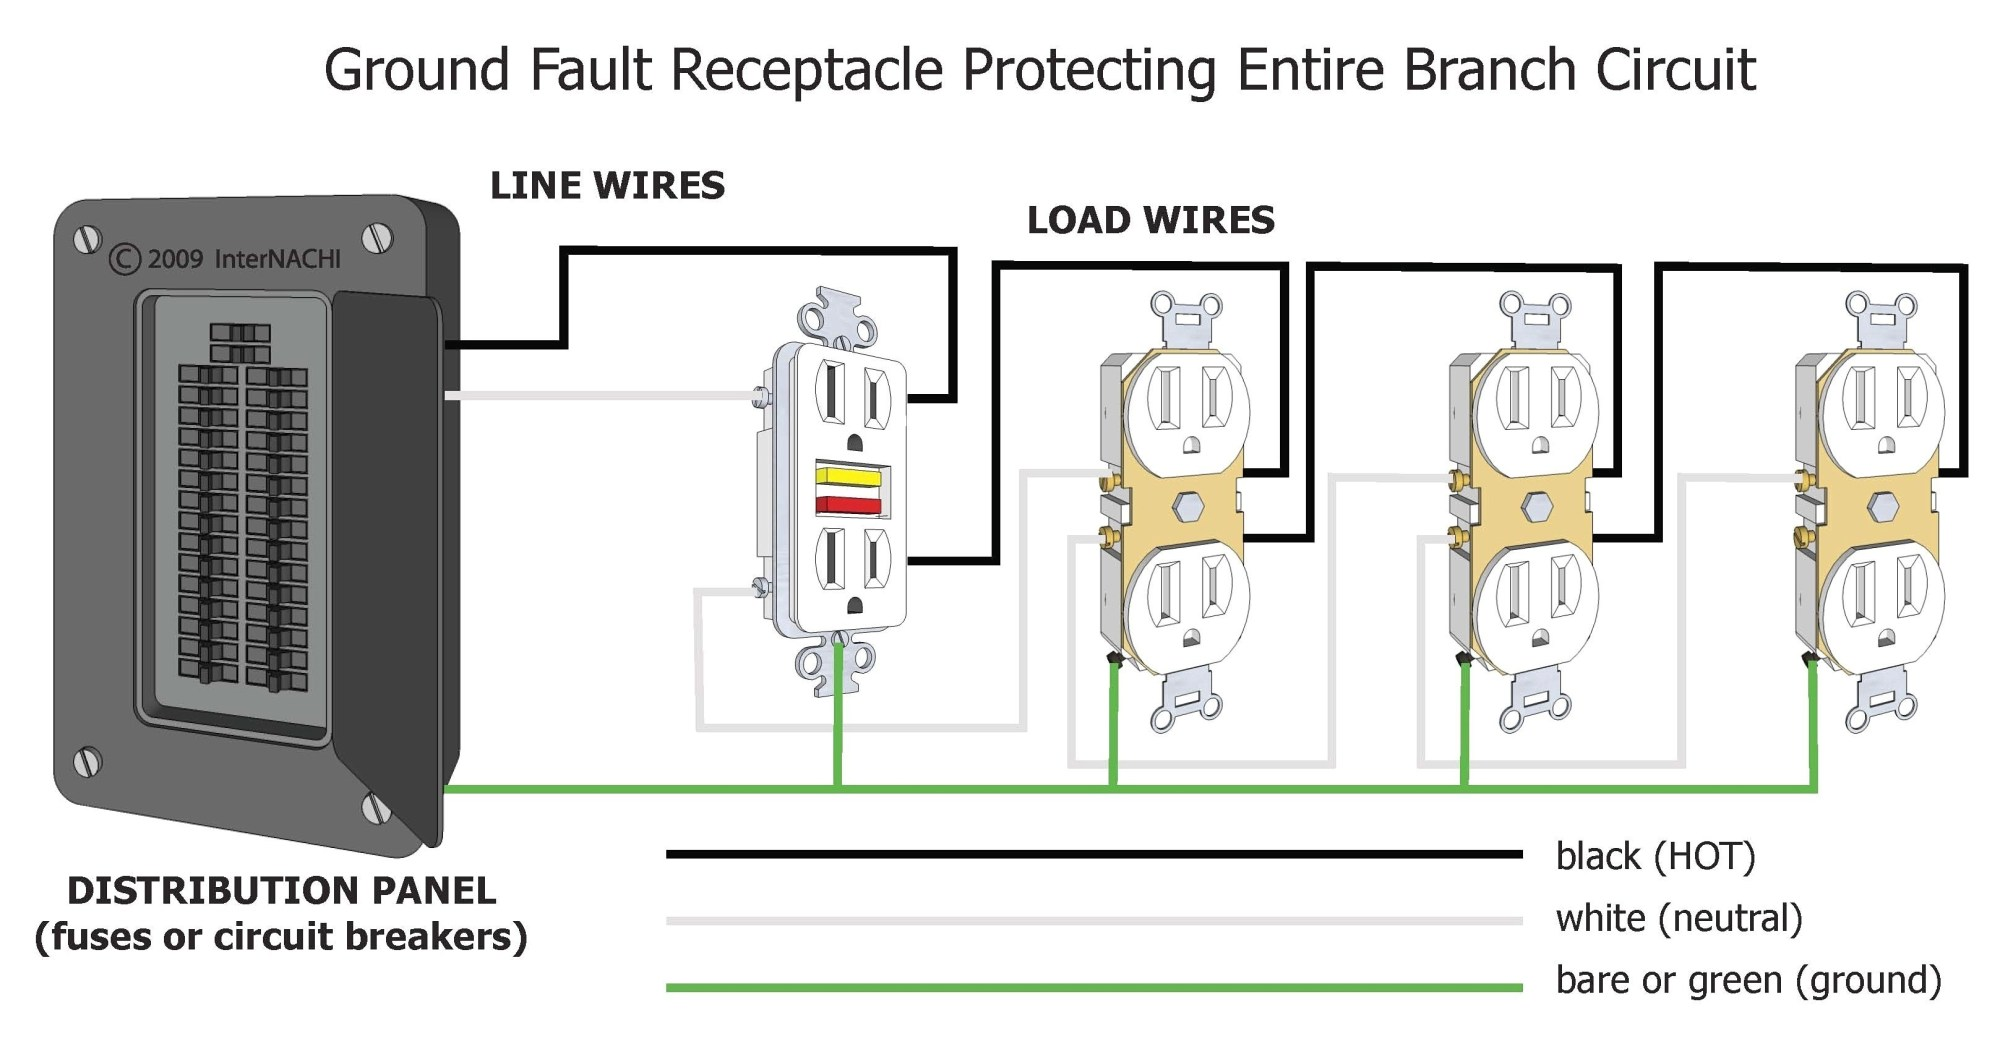 hight resolution of hot tub gfci wiring diagram wiring diagram for hot tub gfci save siemens gfci wiring